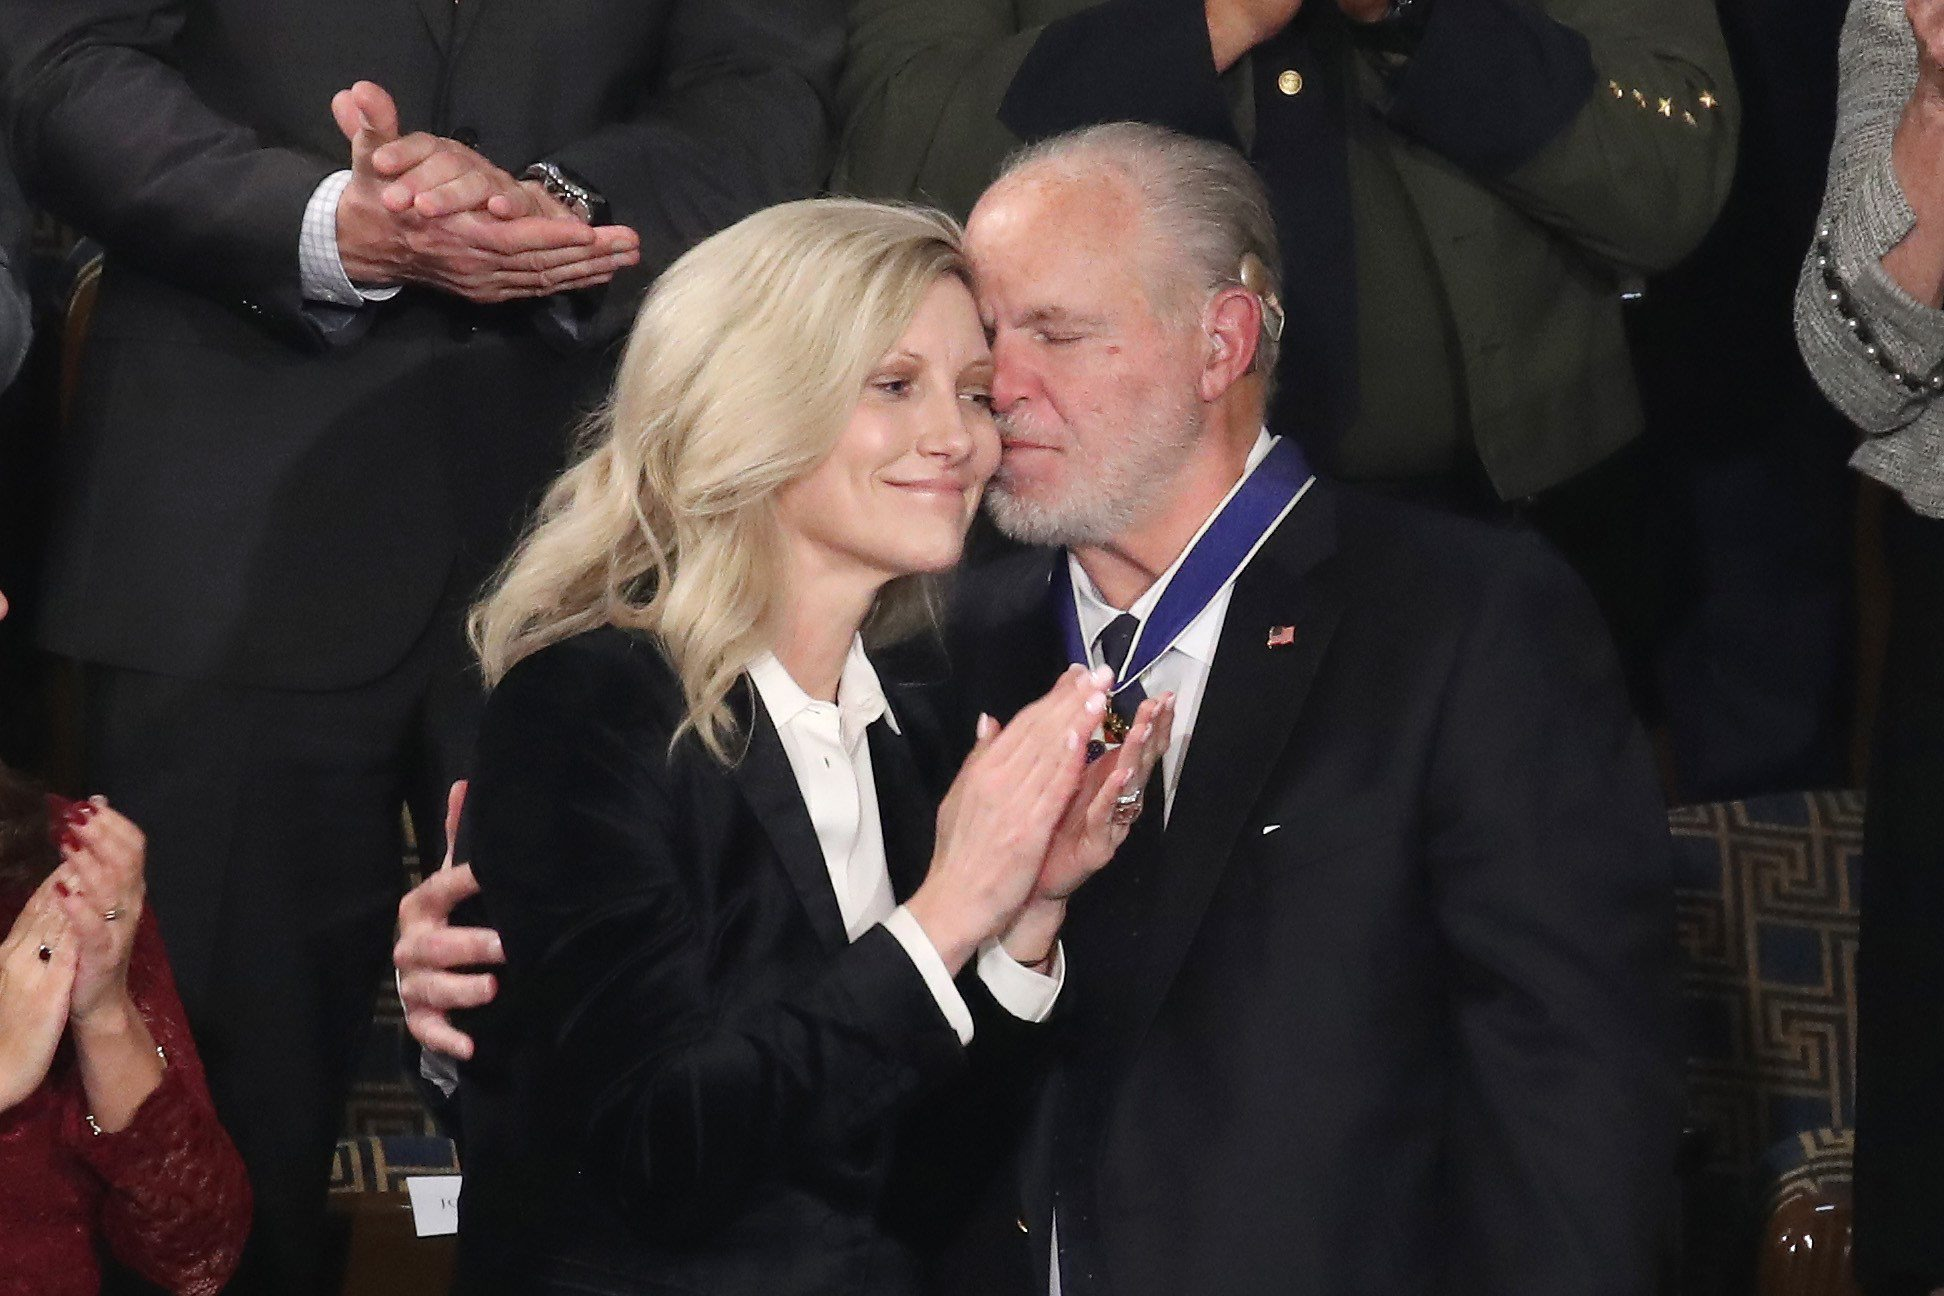 WASHINGTON, DC - FEBRUARY 04: Radio personality Rush Limbaugh embraces his wife Kathryn Adams Limbaugh after First Lady Melania Trump gives him the Presidential Medal of Freedom during the State of the Union address in the chamber of the U.S. House of Representatives on February 04, 2020 in Washington, DC. President Trump delivers his third State of the Union to the nation the night before the U.S. Senate is set to vote in his impeachment trial.   Drew Angerer/Getty Images/AFP == FOR NEWSPAPERS, INTERNET, TELCOS & TELEVISION USE ONLY ==